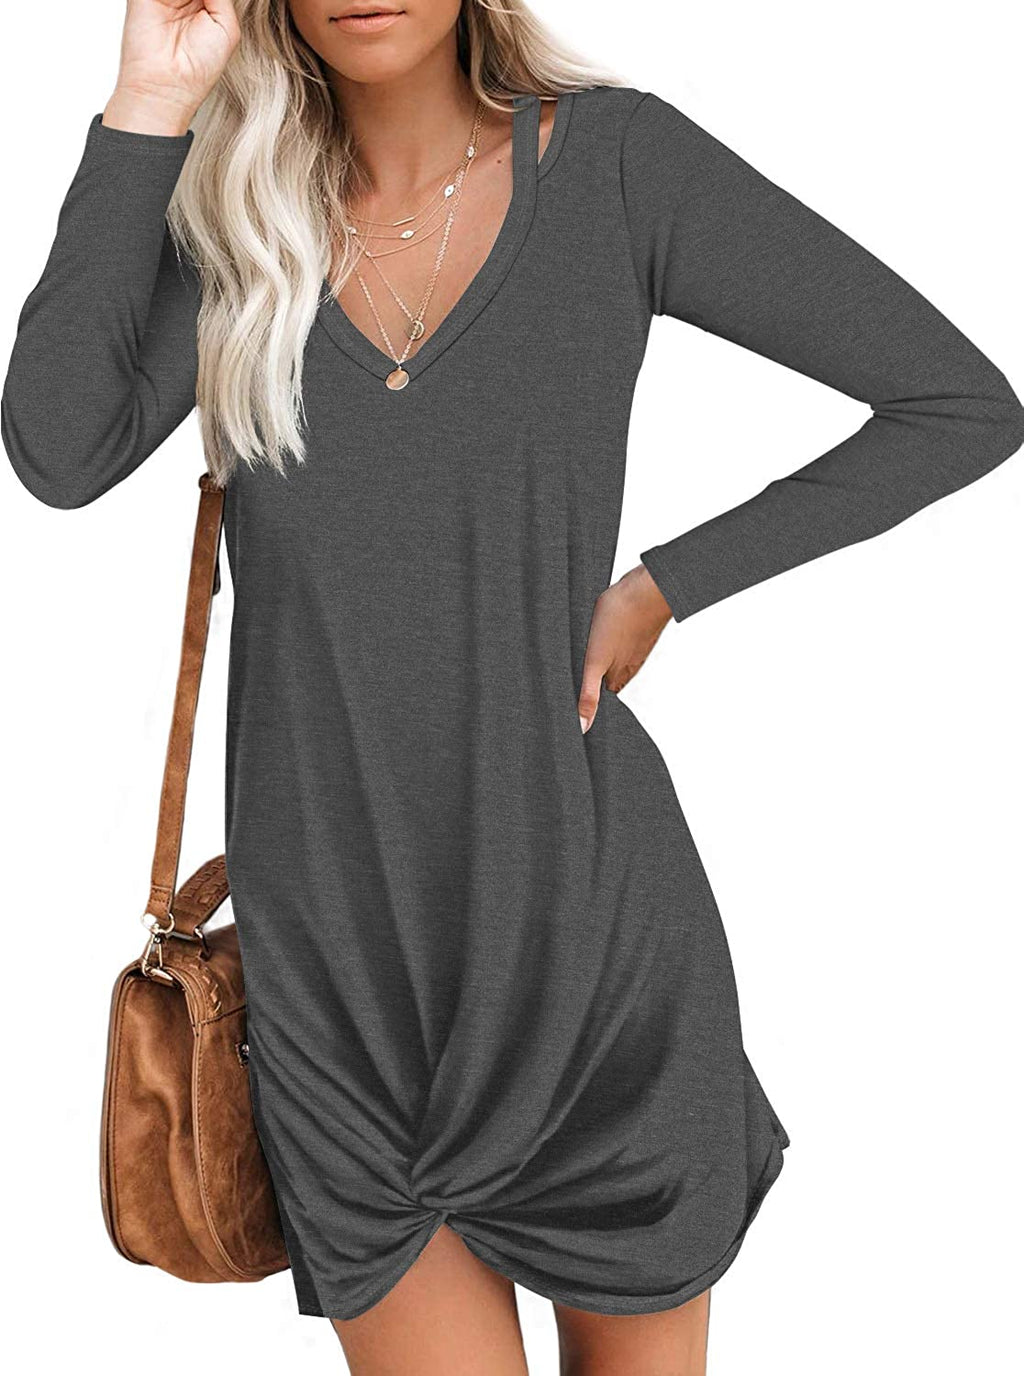 Women's Casual Short Sleeve V Neck Front Knot Twist Tie T Shirt | yesicafashion.com